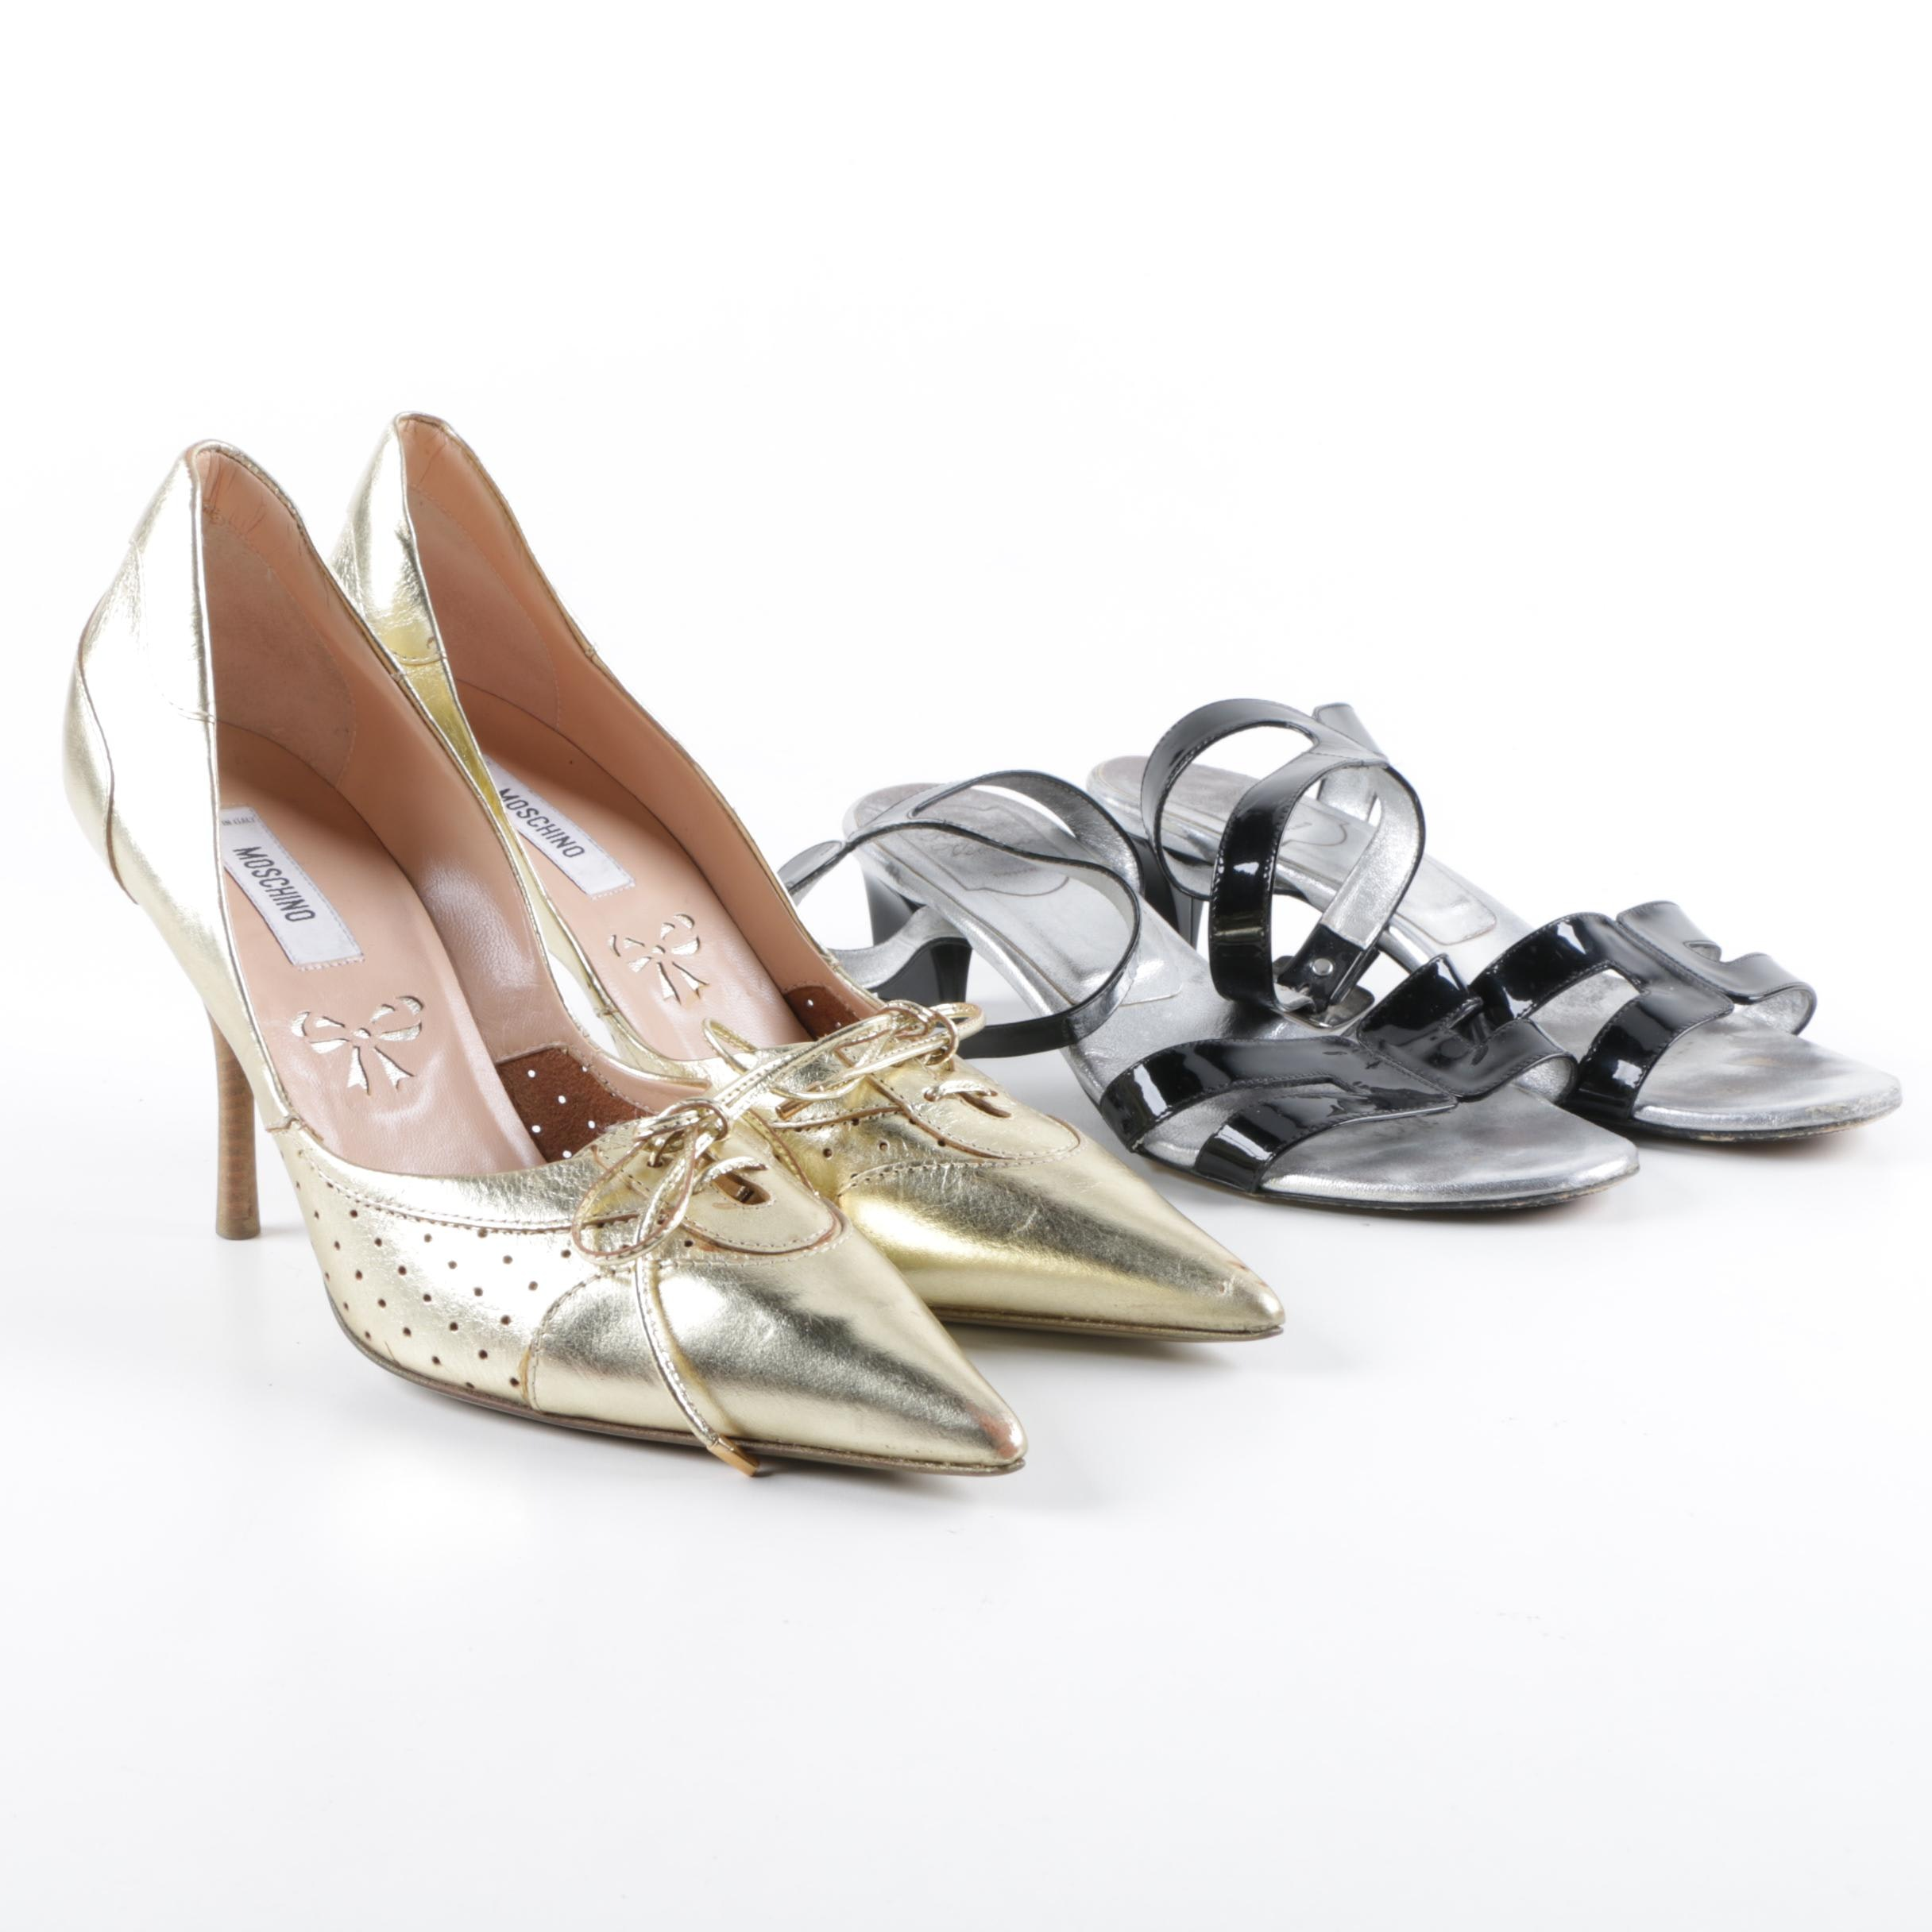 Moschino Metallic Gold d'Orsay Pumps and Roger Vivier Black Leather Sandals